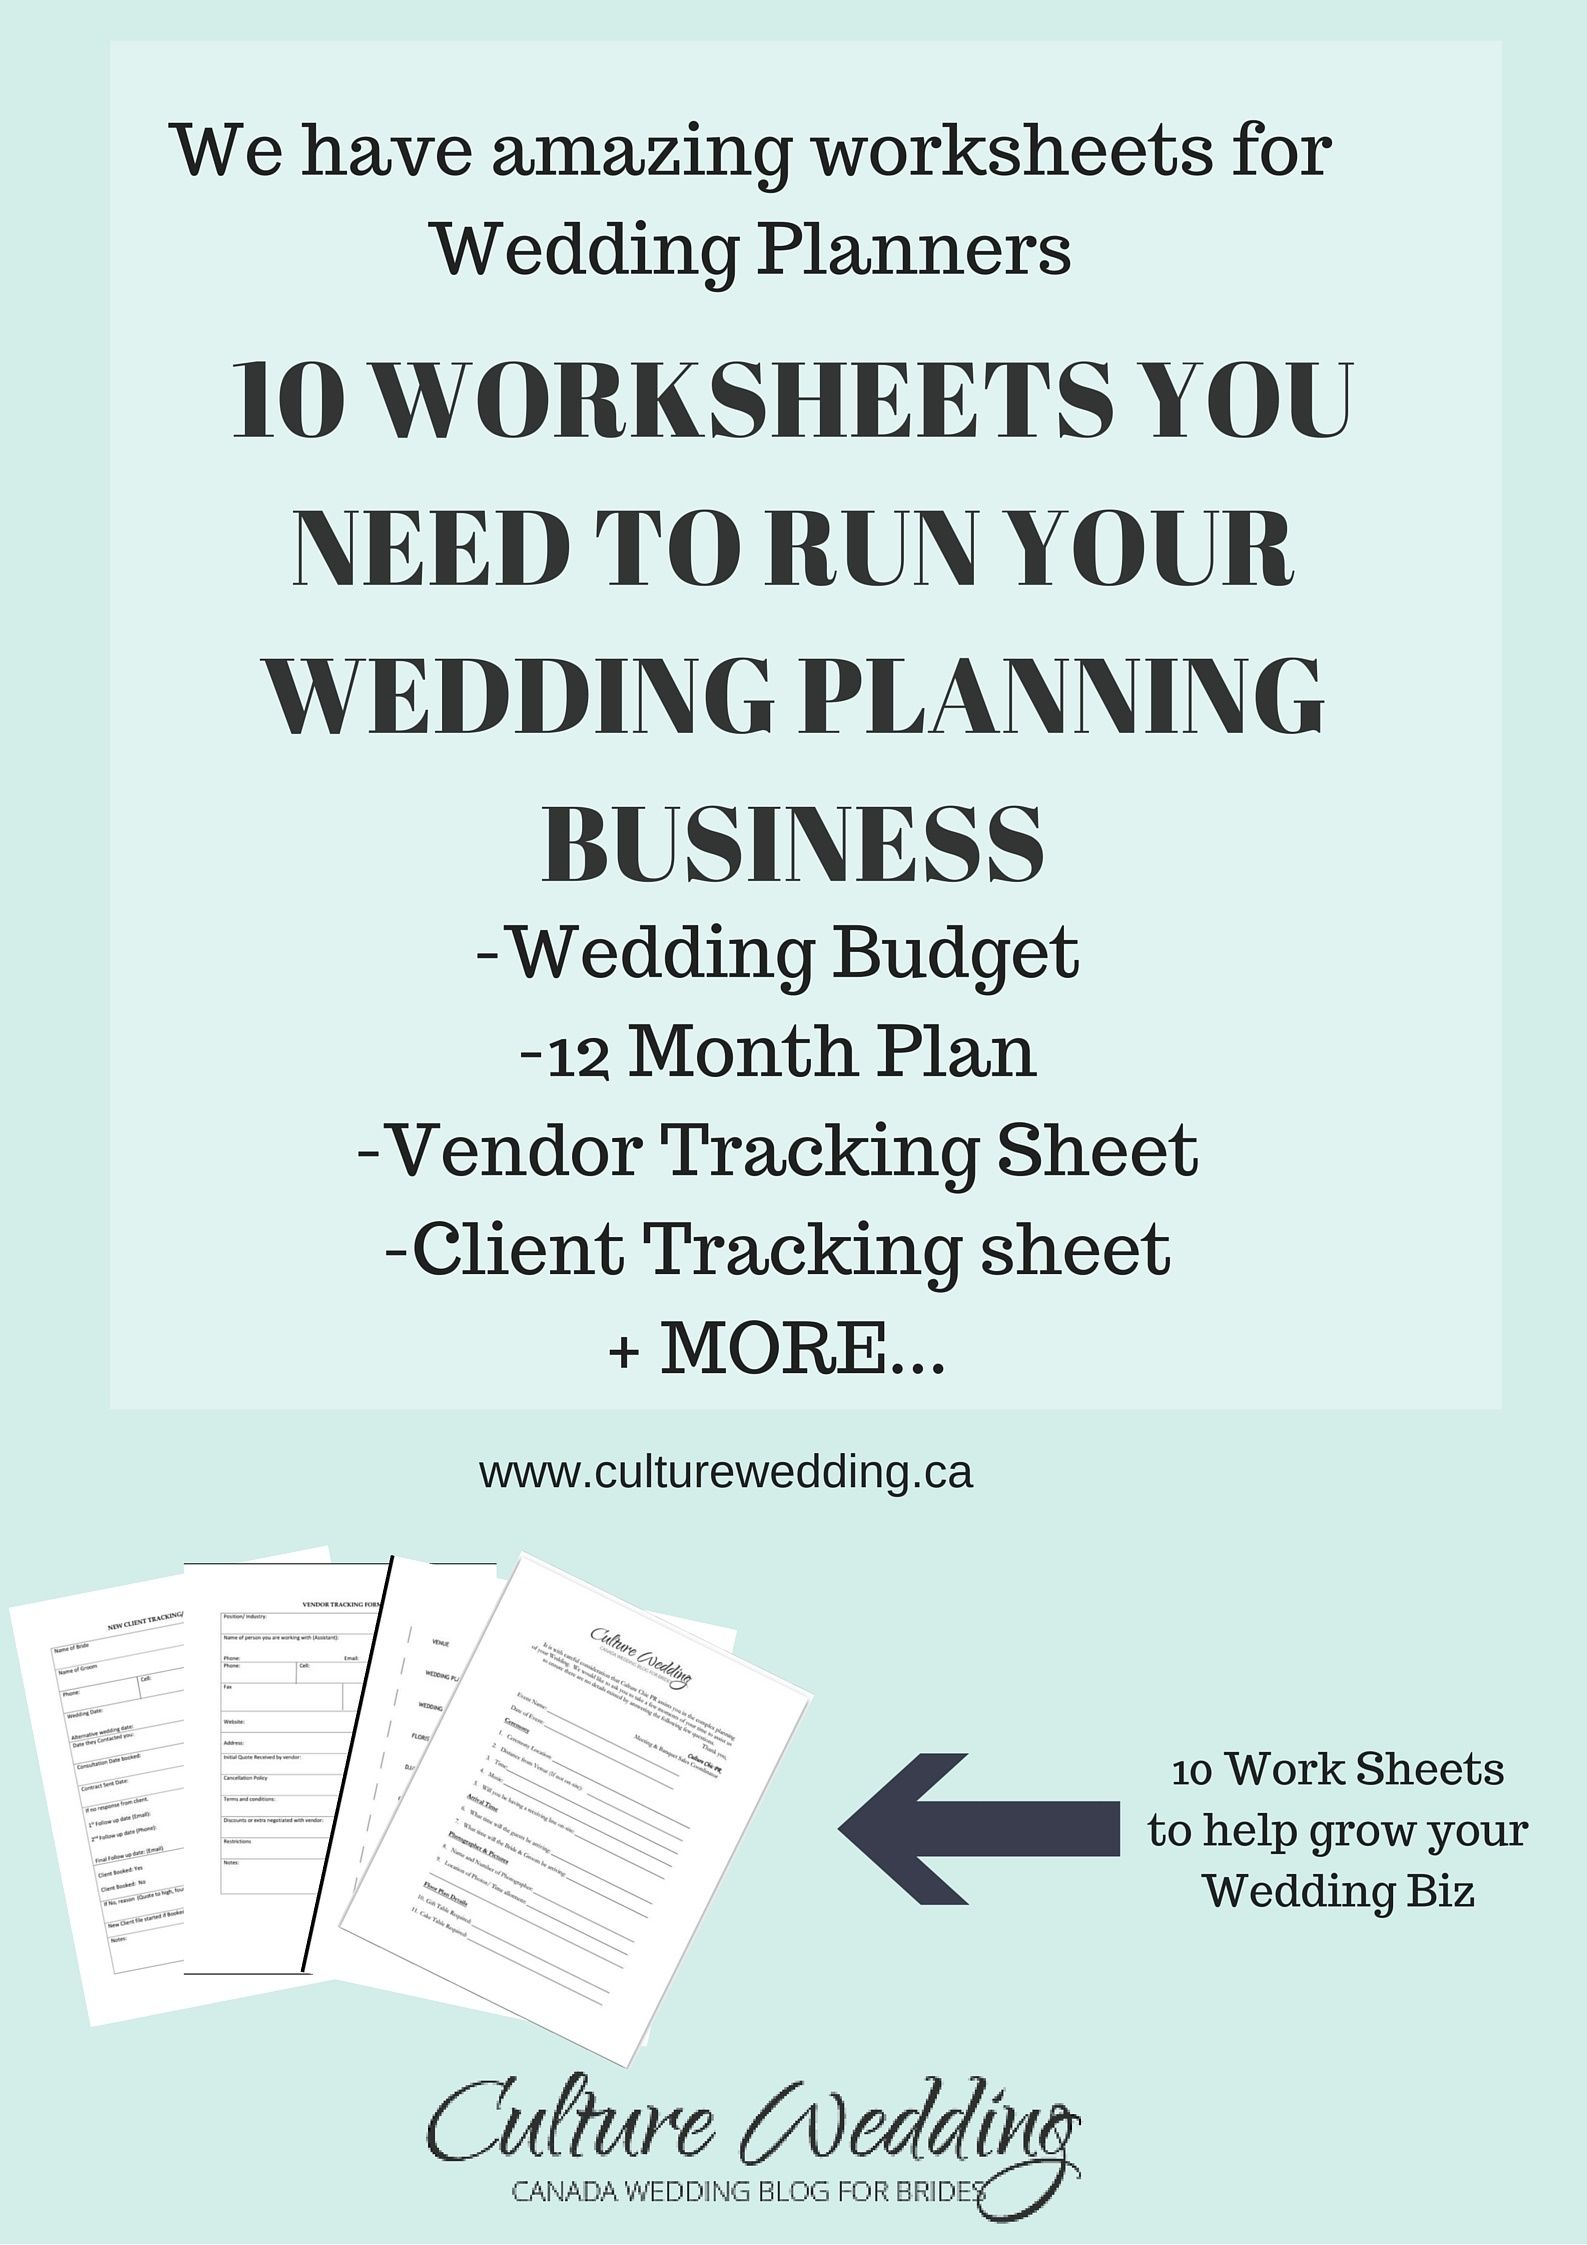 Are You Looking For Worksheets To Help In Your Wedding Business We Have Budgets Timelines Client Track Sheets Sample